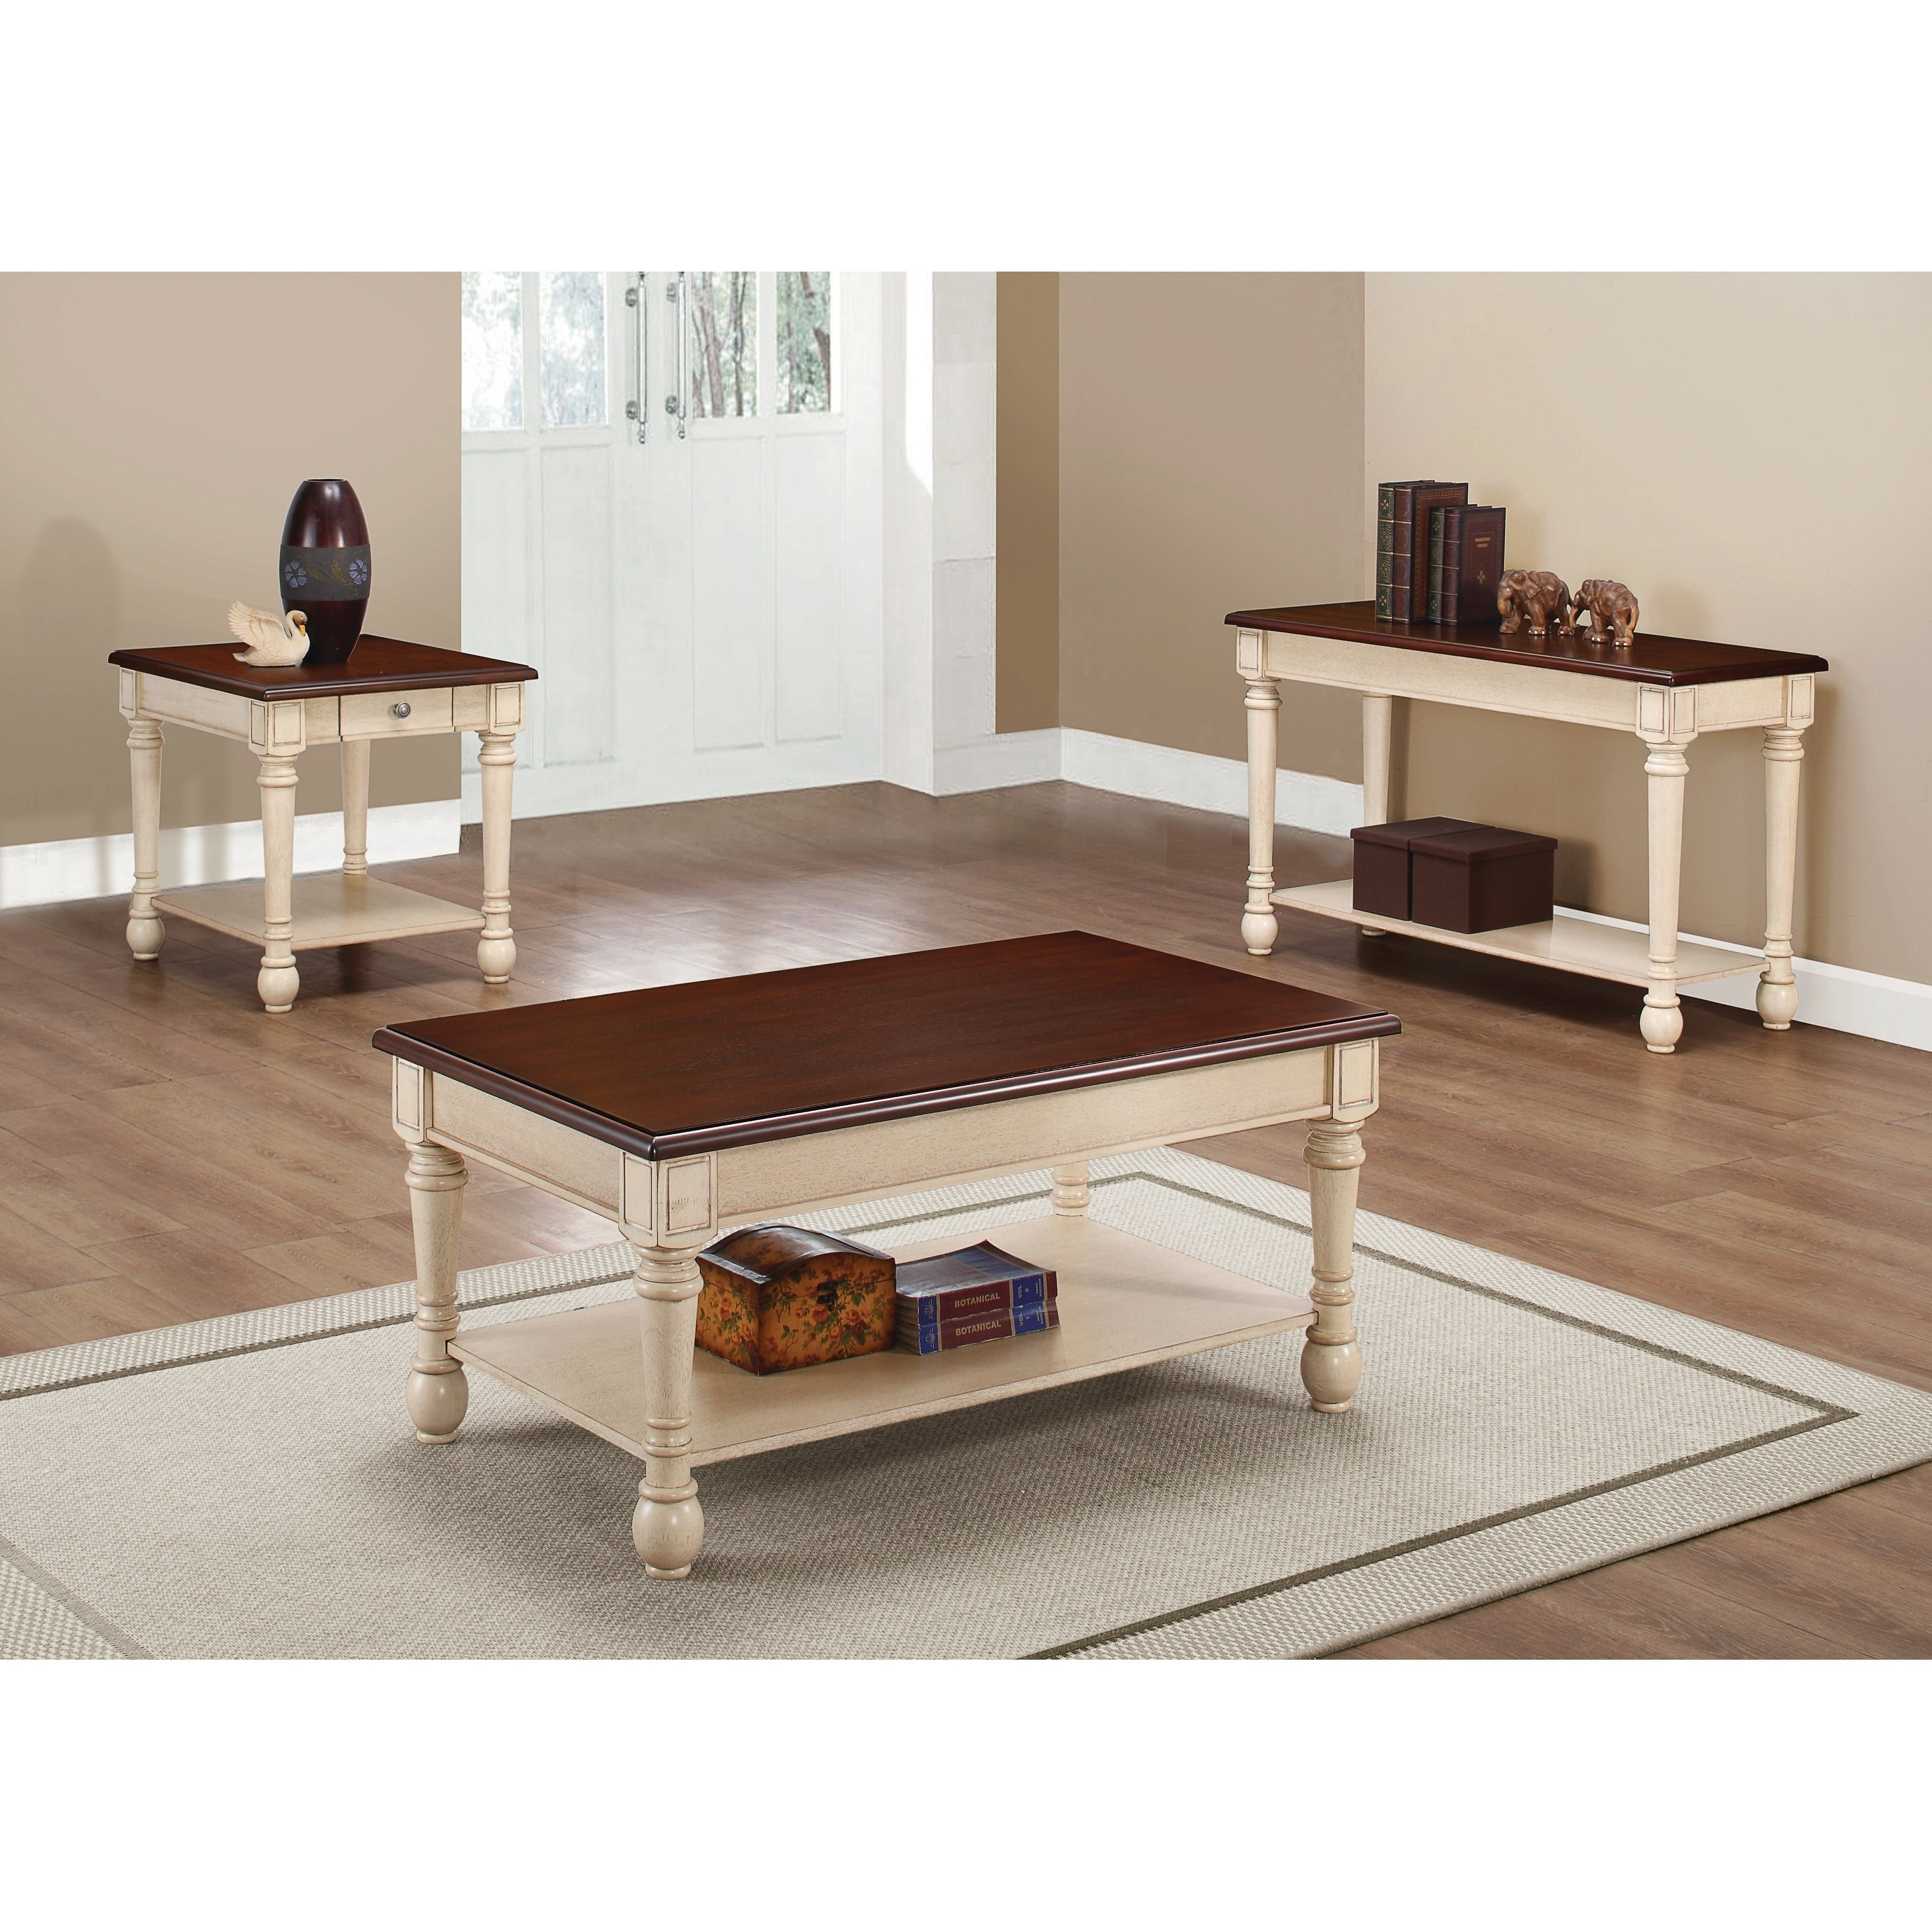 Transitional Dark Brown And Antique White Coffee Table Free Shipping Today 21339061